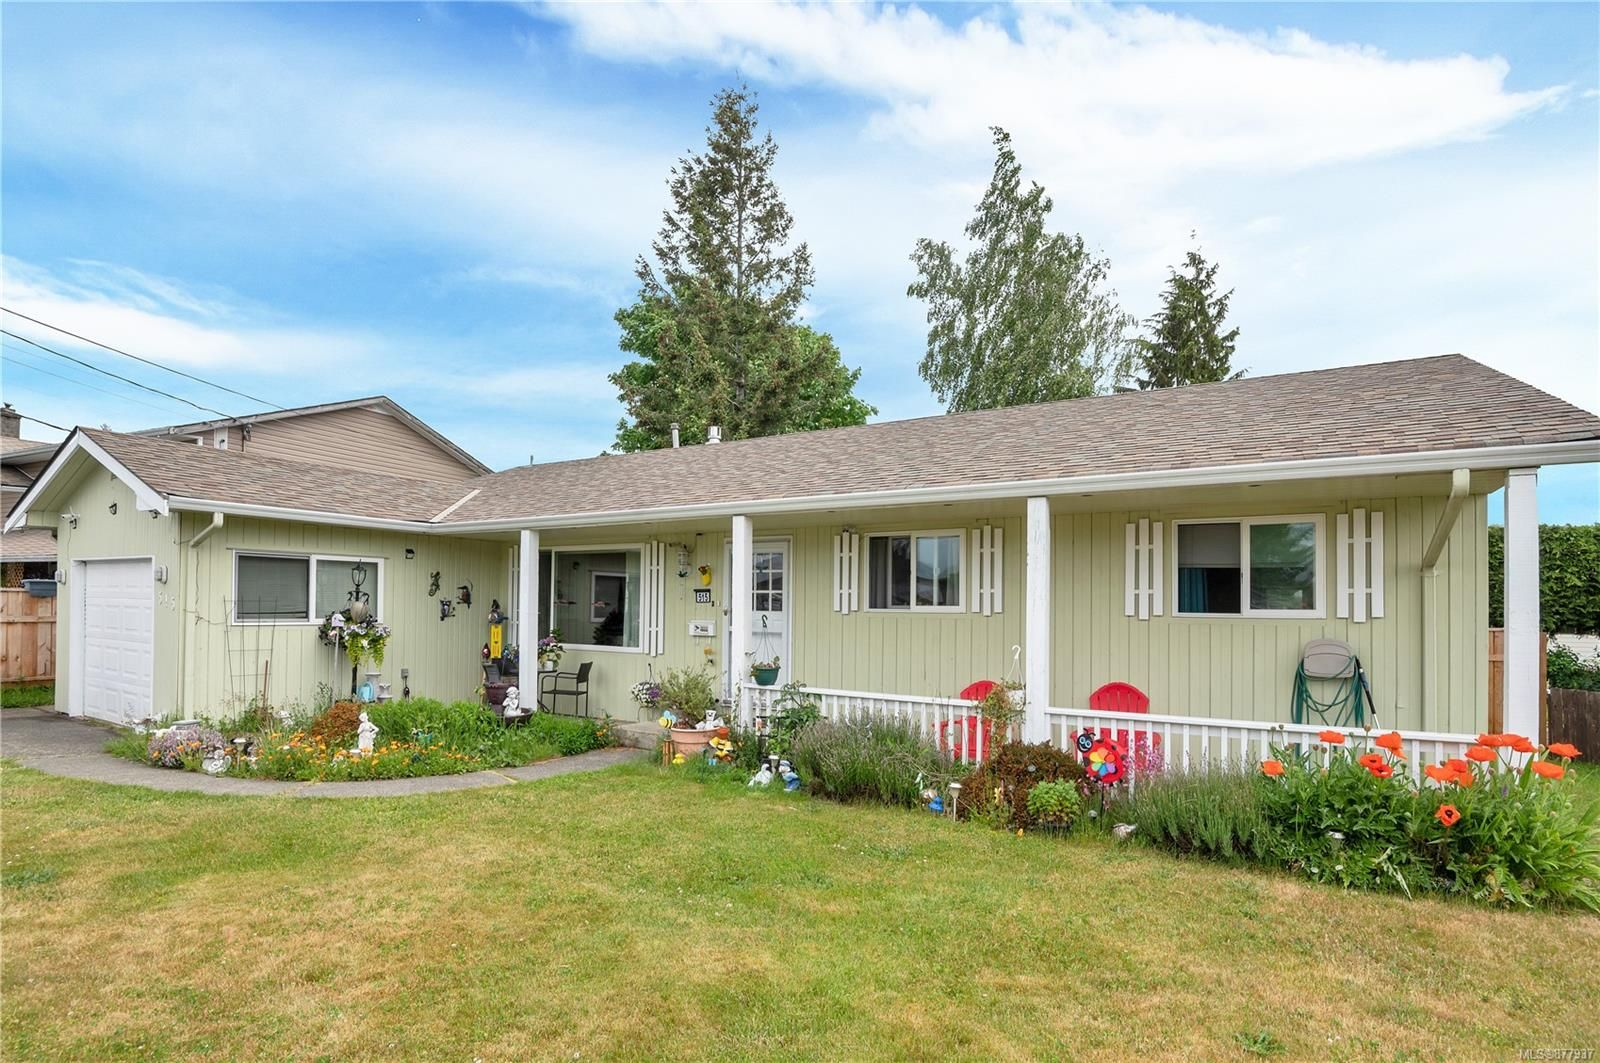 Main Photo: 515 S Birch St in : CR Campbell River Central House for sale (Campbell River)  : MLS®# 877937